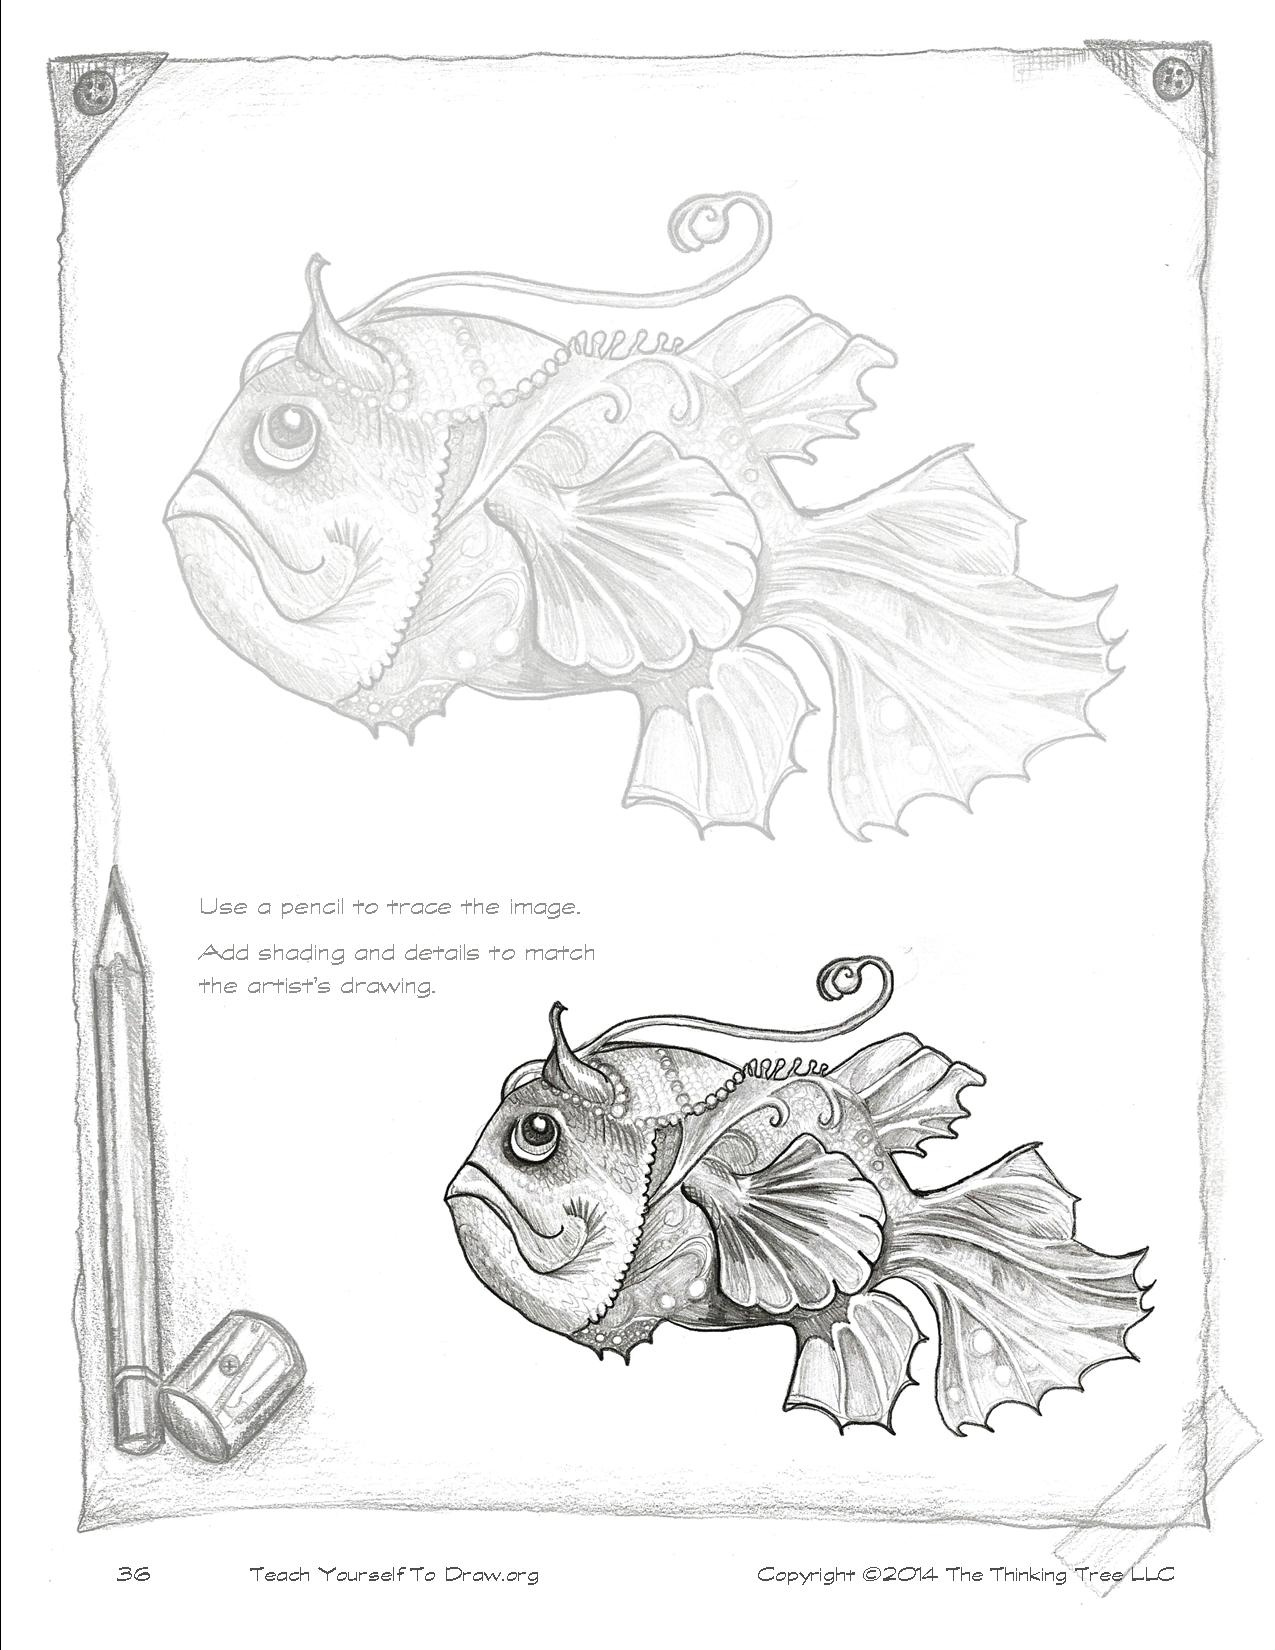 Draw Sea Creatures Page 36.jpg